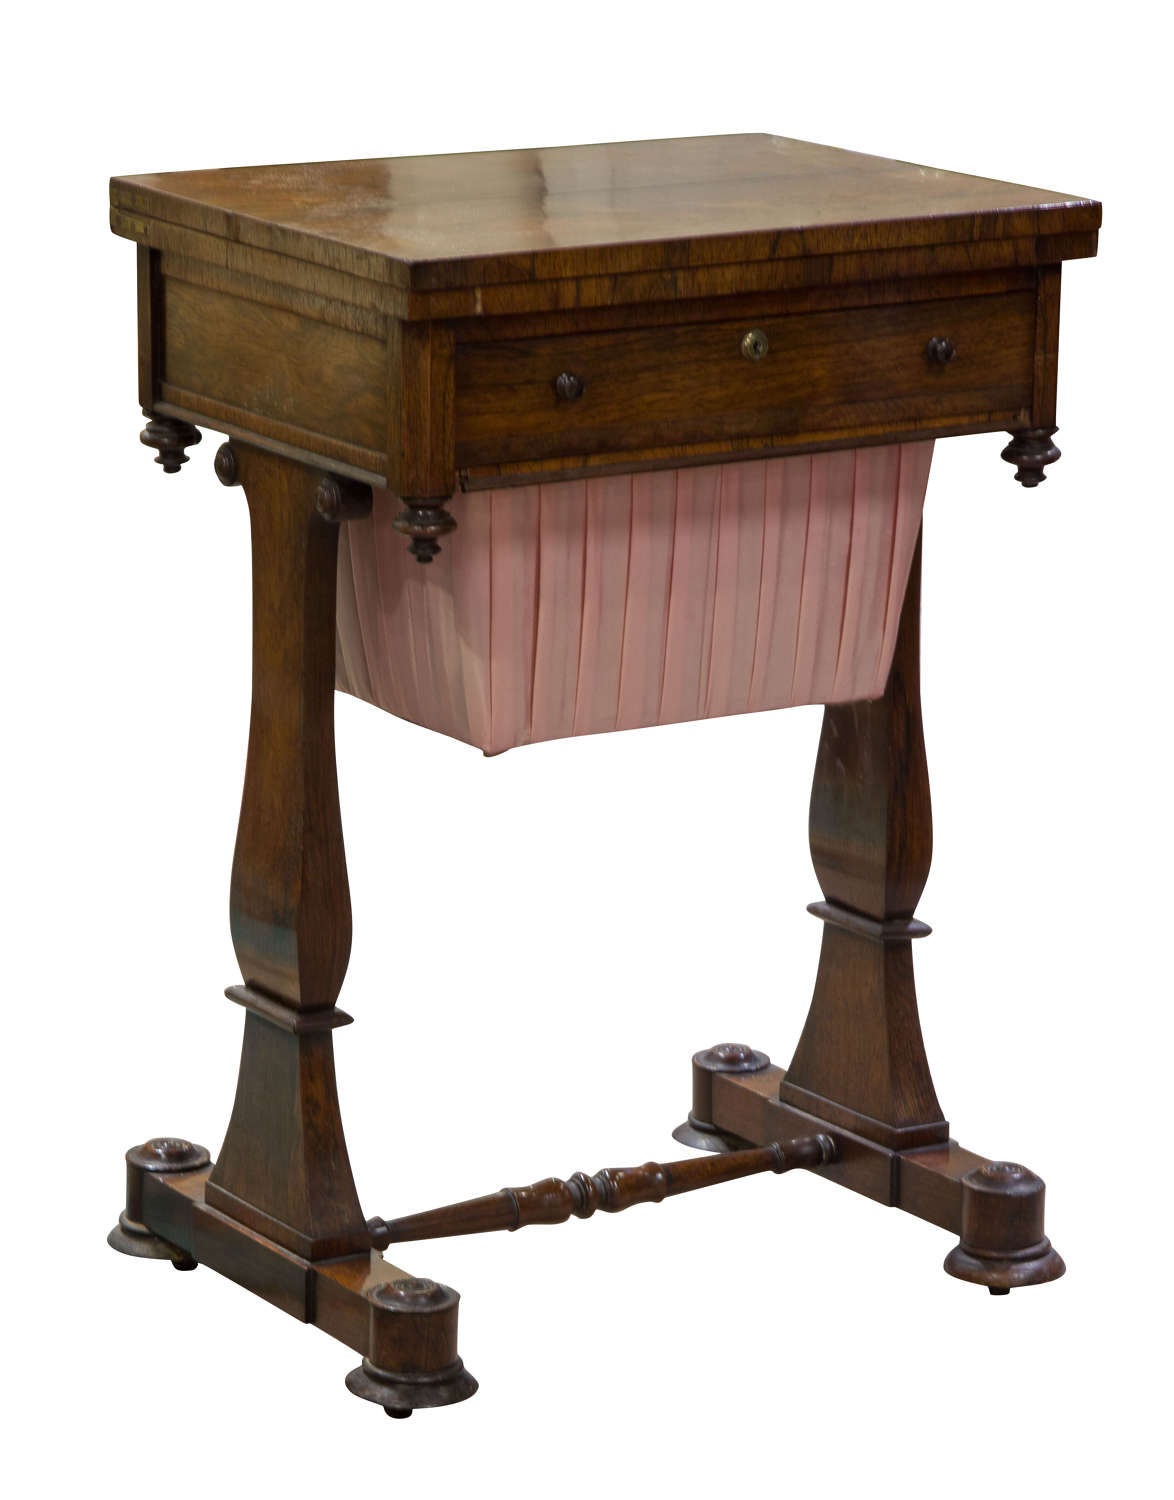 William IV rosewood sewing/work table